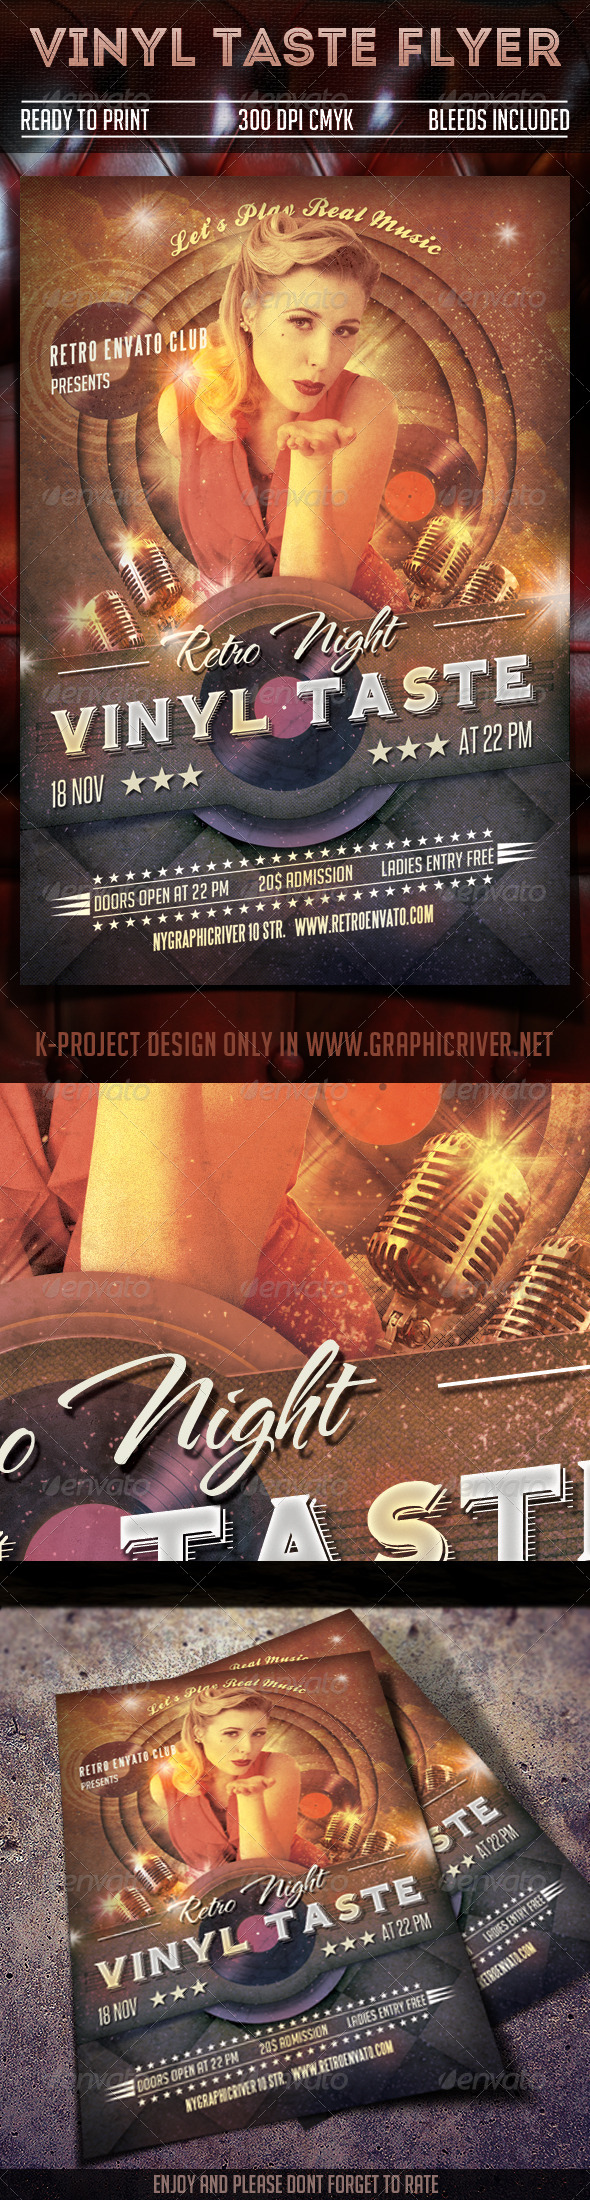 GraphicRiver Vinyl Taste Flyer 7785175